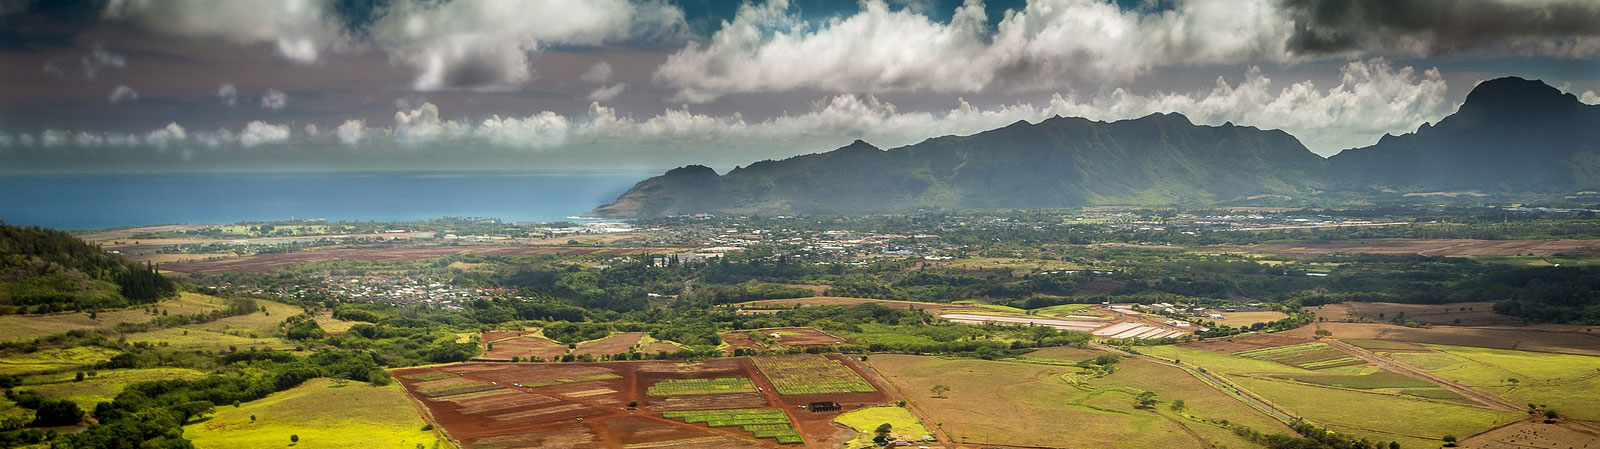 St. Catherine History - Since 1946, St. Catherine school has seen a rich history,a faithful journey that leads us to a bright future on Kauai.